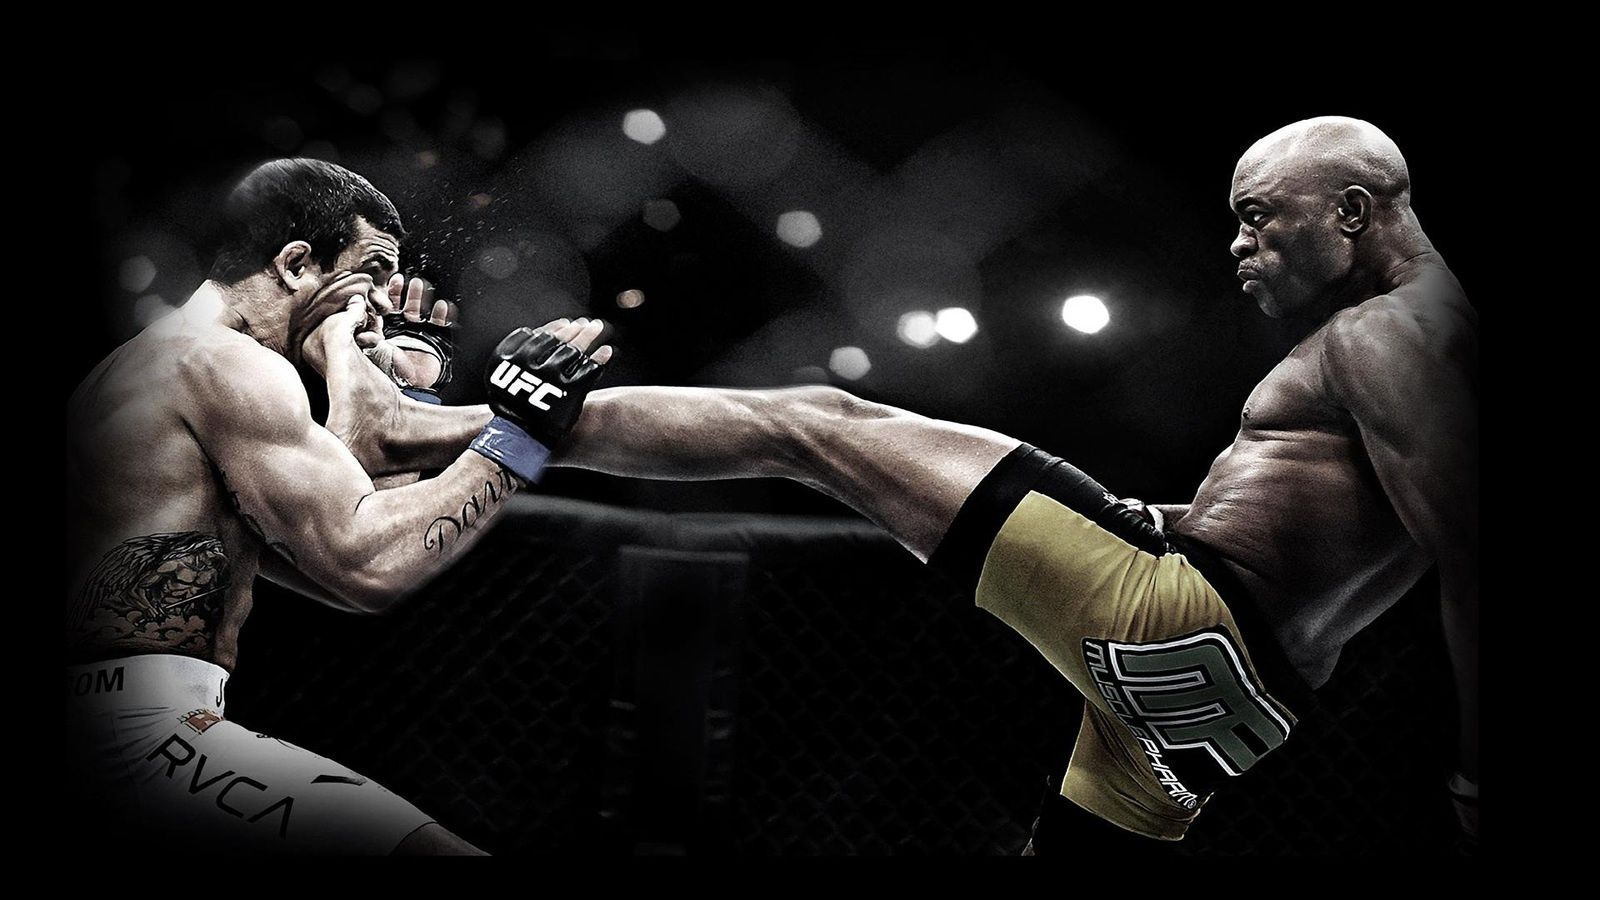 muay thai the art of fighting Muay thai muay thai or thai boxing is the martial art that thai people used to defend siam against neighboring countries it's referred to as the art of the 8 limbs.